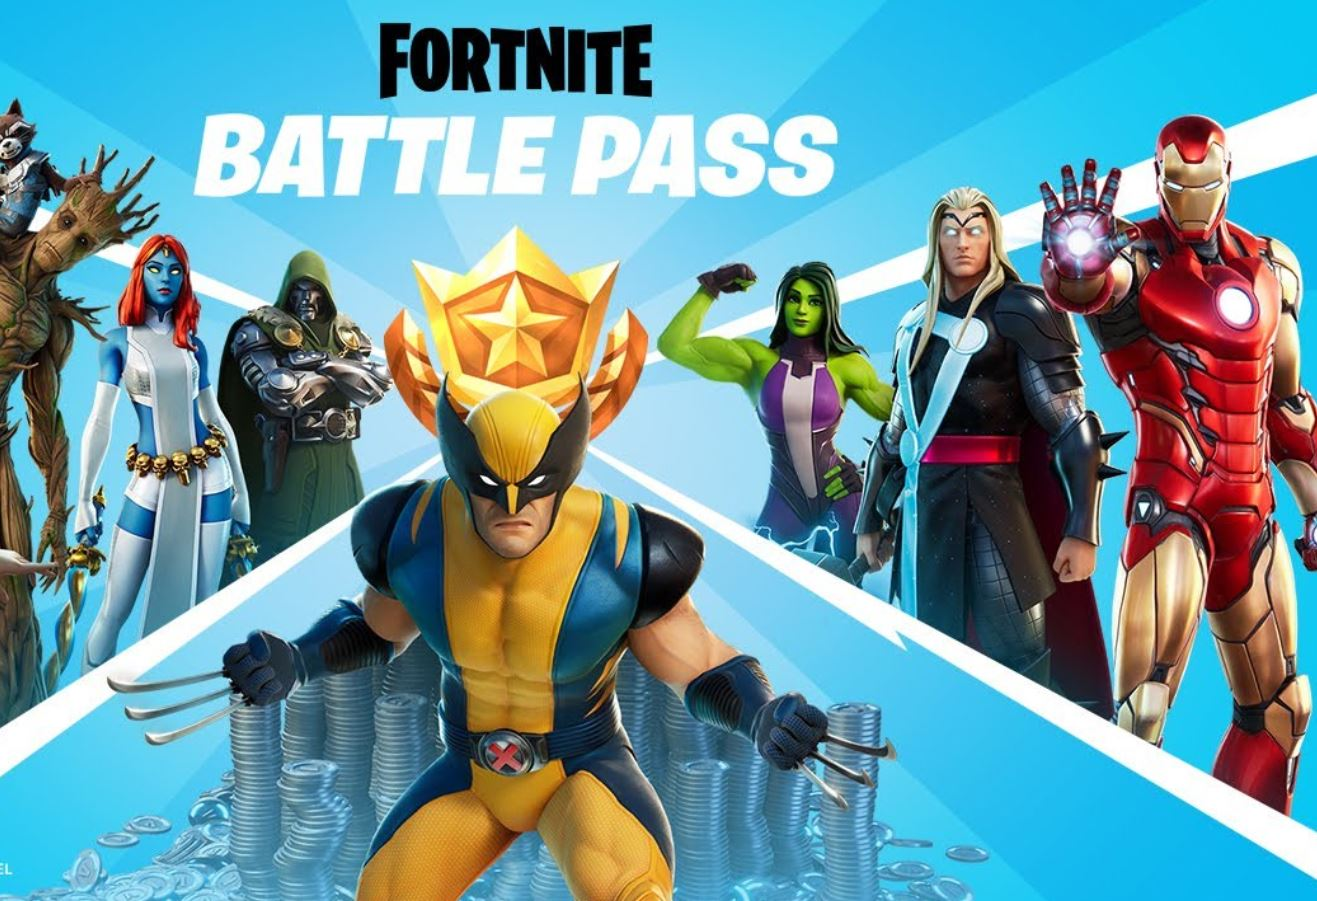 level up fast in Fortnite